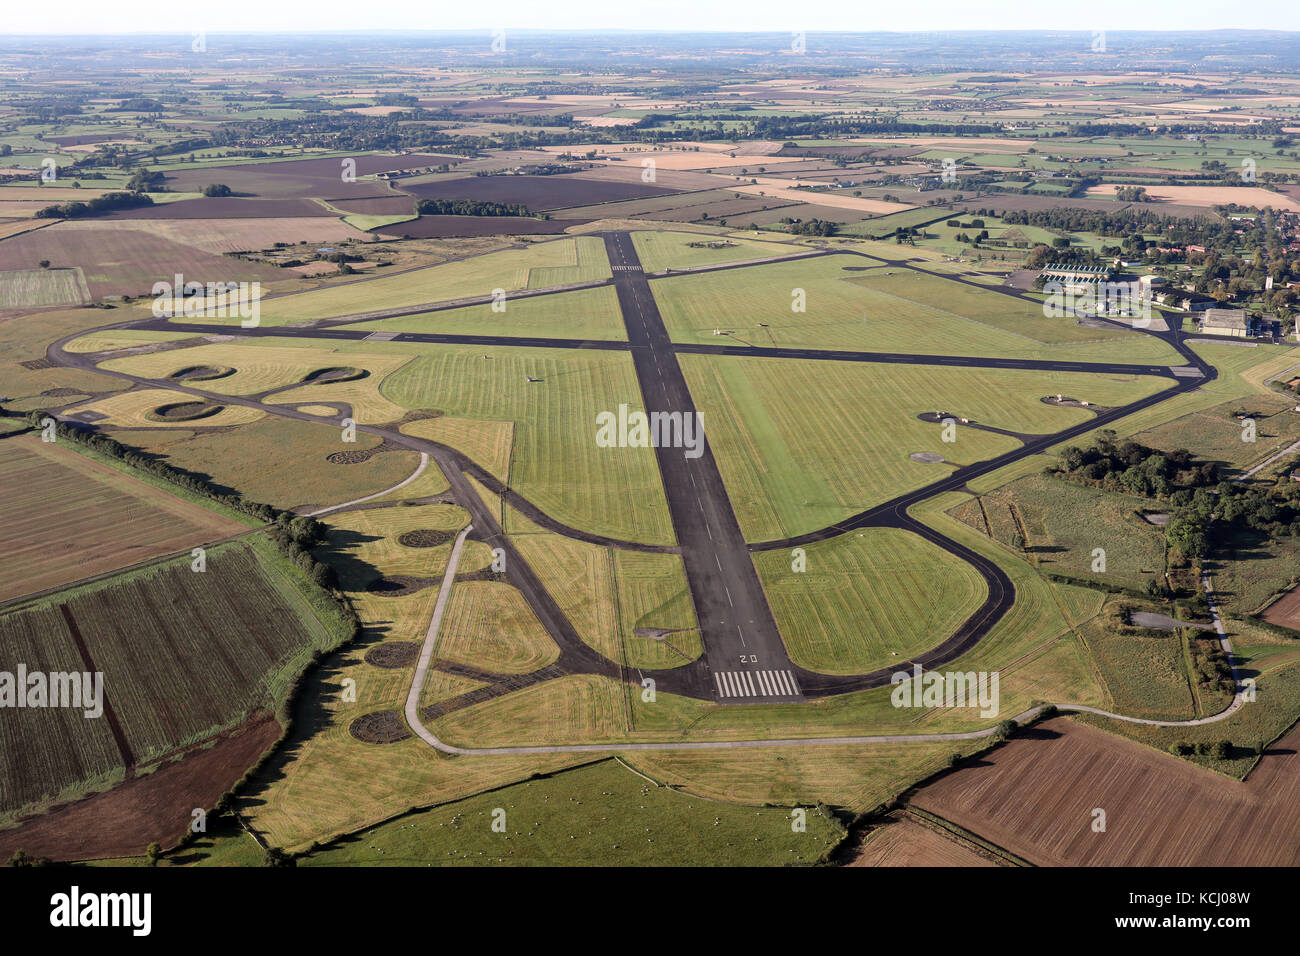 aerial view of a RAF Topcliffe Royal Air Force station near Thirsk in North Yorkshire, UK - Stock Image